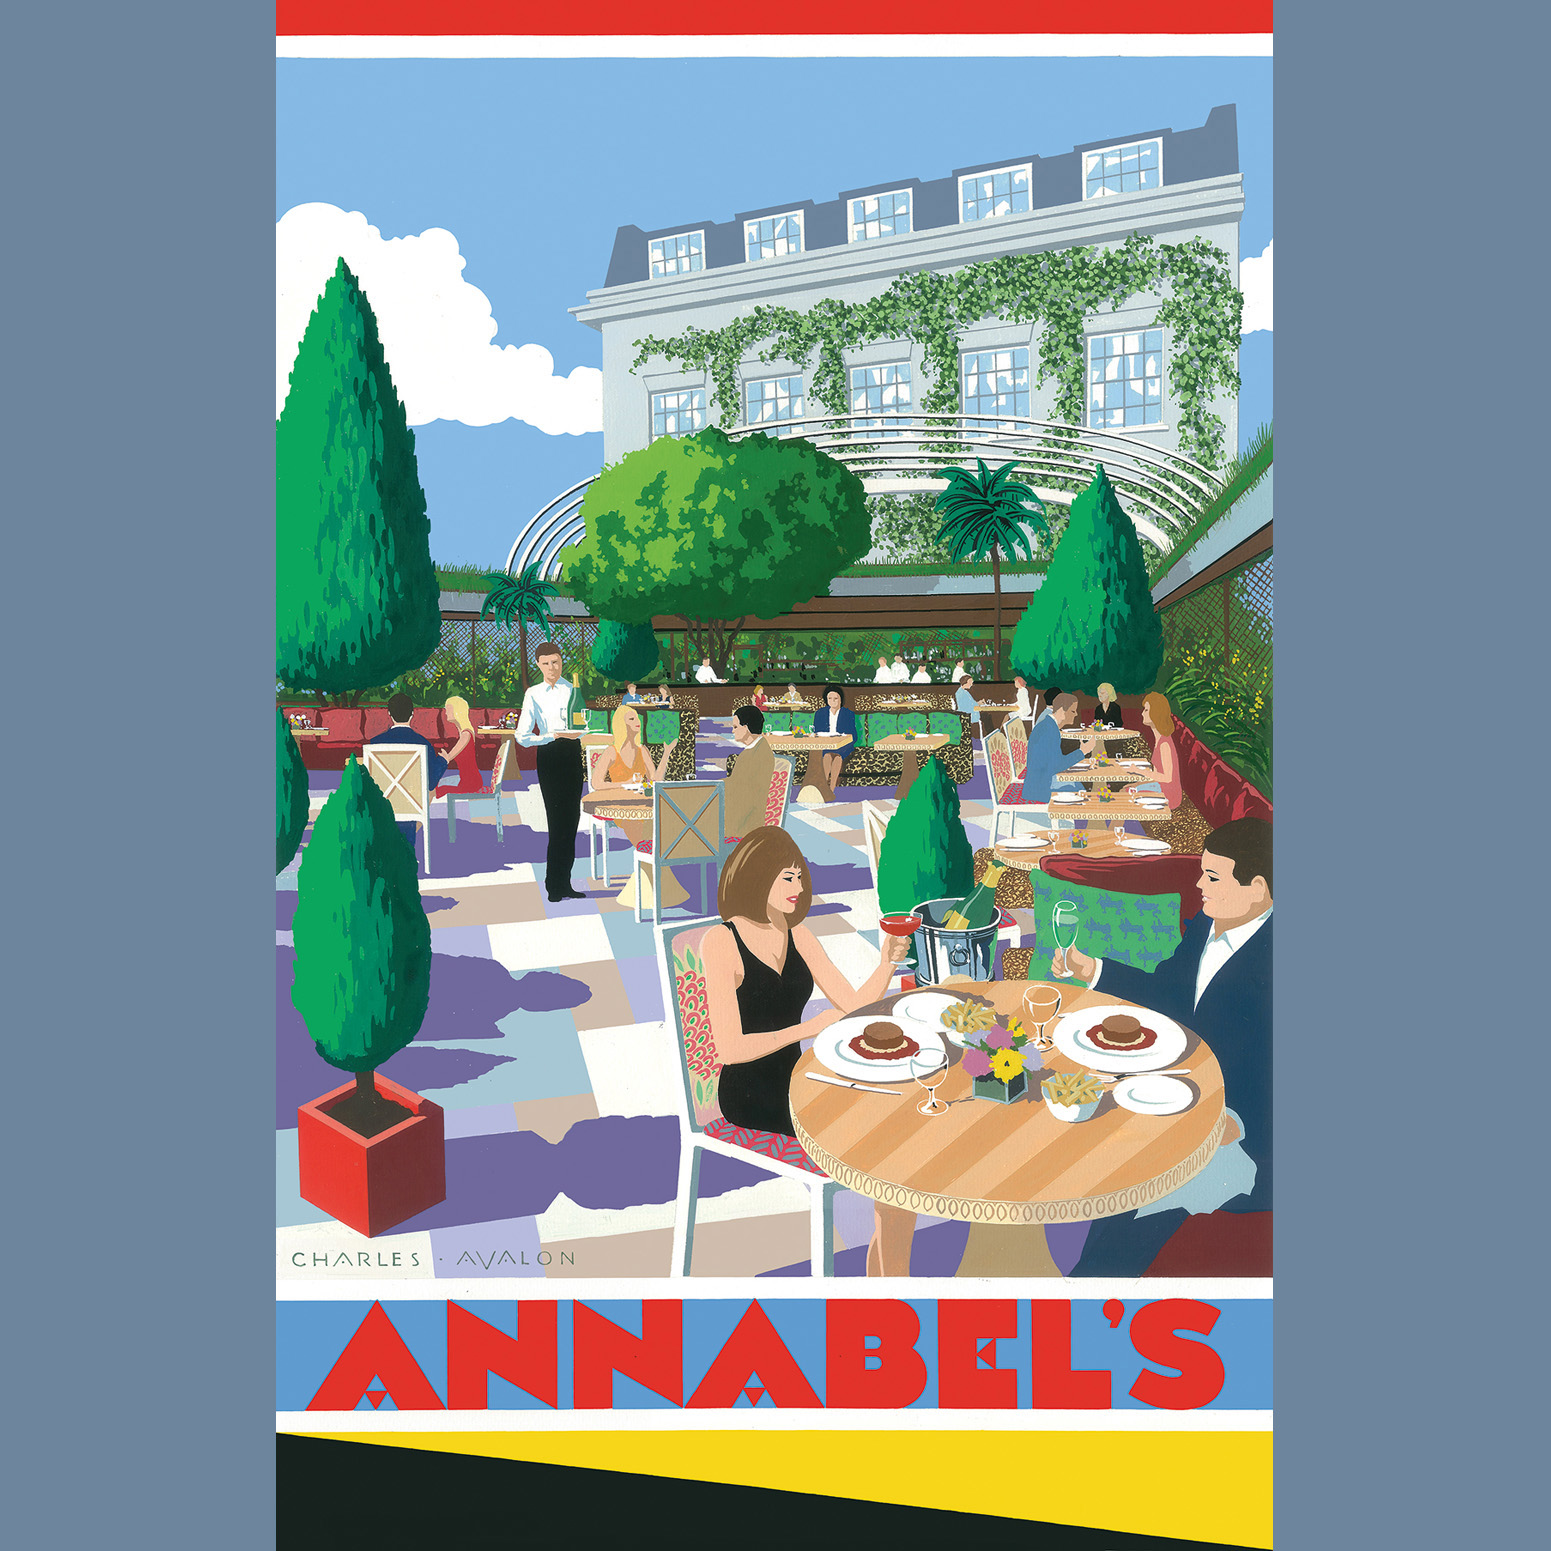 April 2019  We love this Art-Deco inspired poster of the terrace garden at Annabel's. A recently commissioned and beautiful artwork by Charles Avalon for Pullman Editions. It really captures the curvilinear form of our design for the glazed sliding canopy.   Link to the project